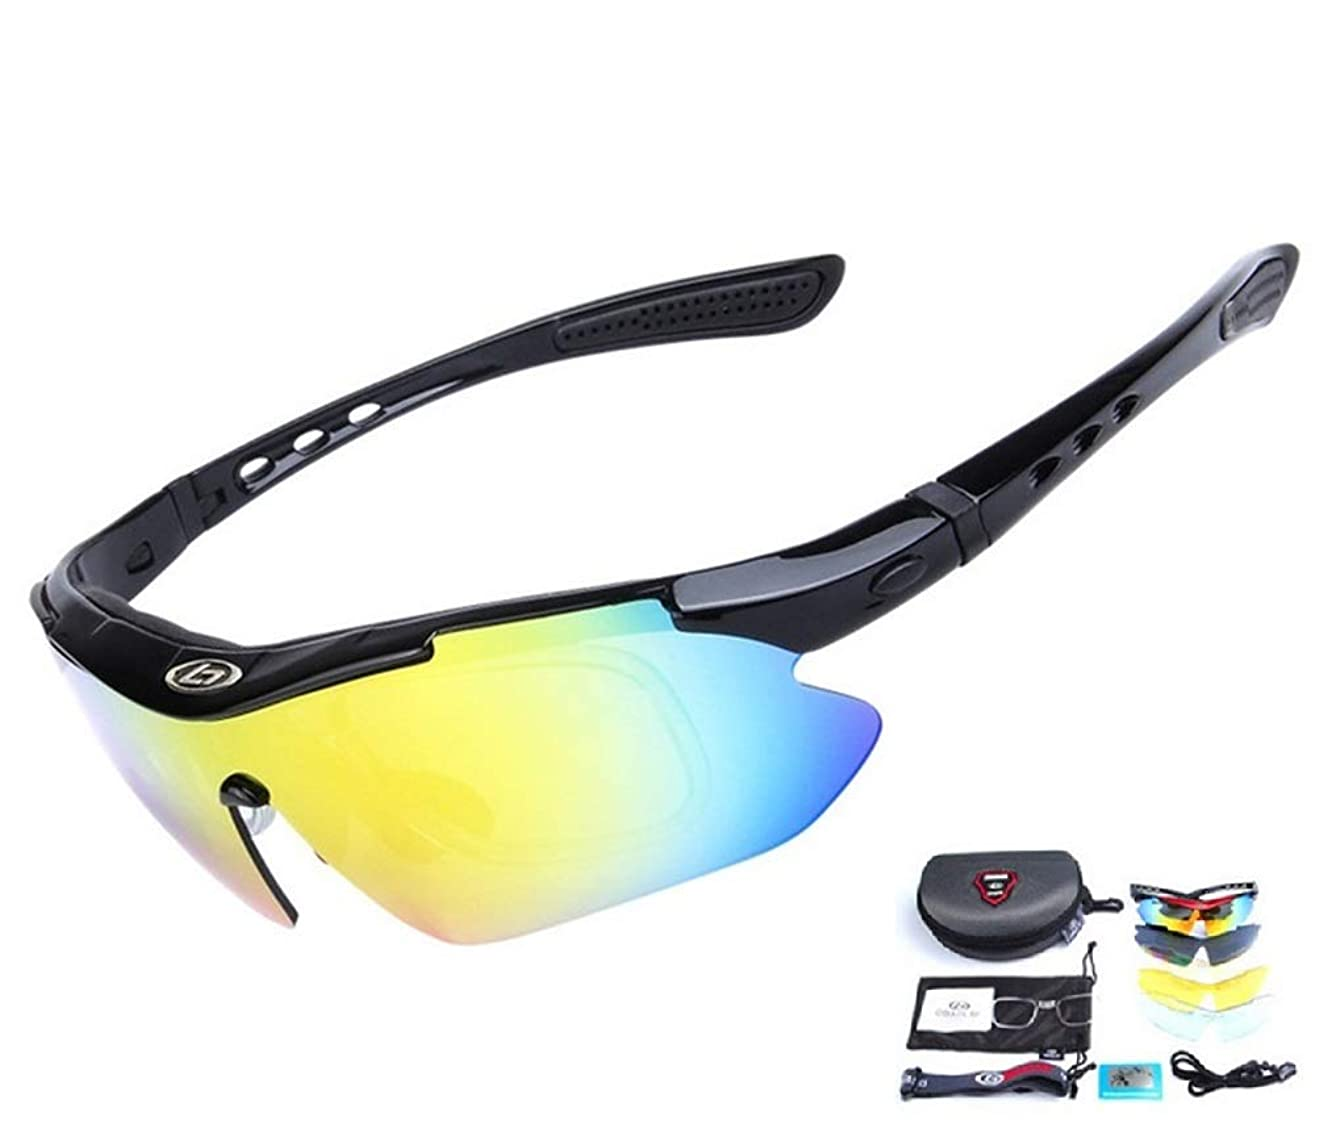 Baselay Polarized Sports Sunglasses Sun Glasses UV400 with 5 Interchangeable Lenes for Men Women Cycling Running Driving Fishing Golf Baseball Goggles